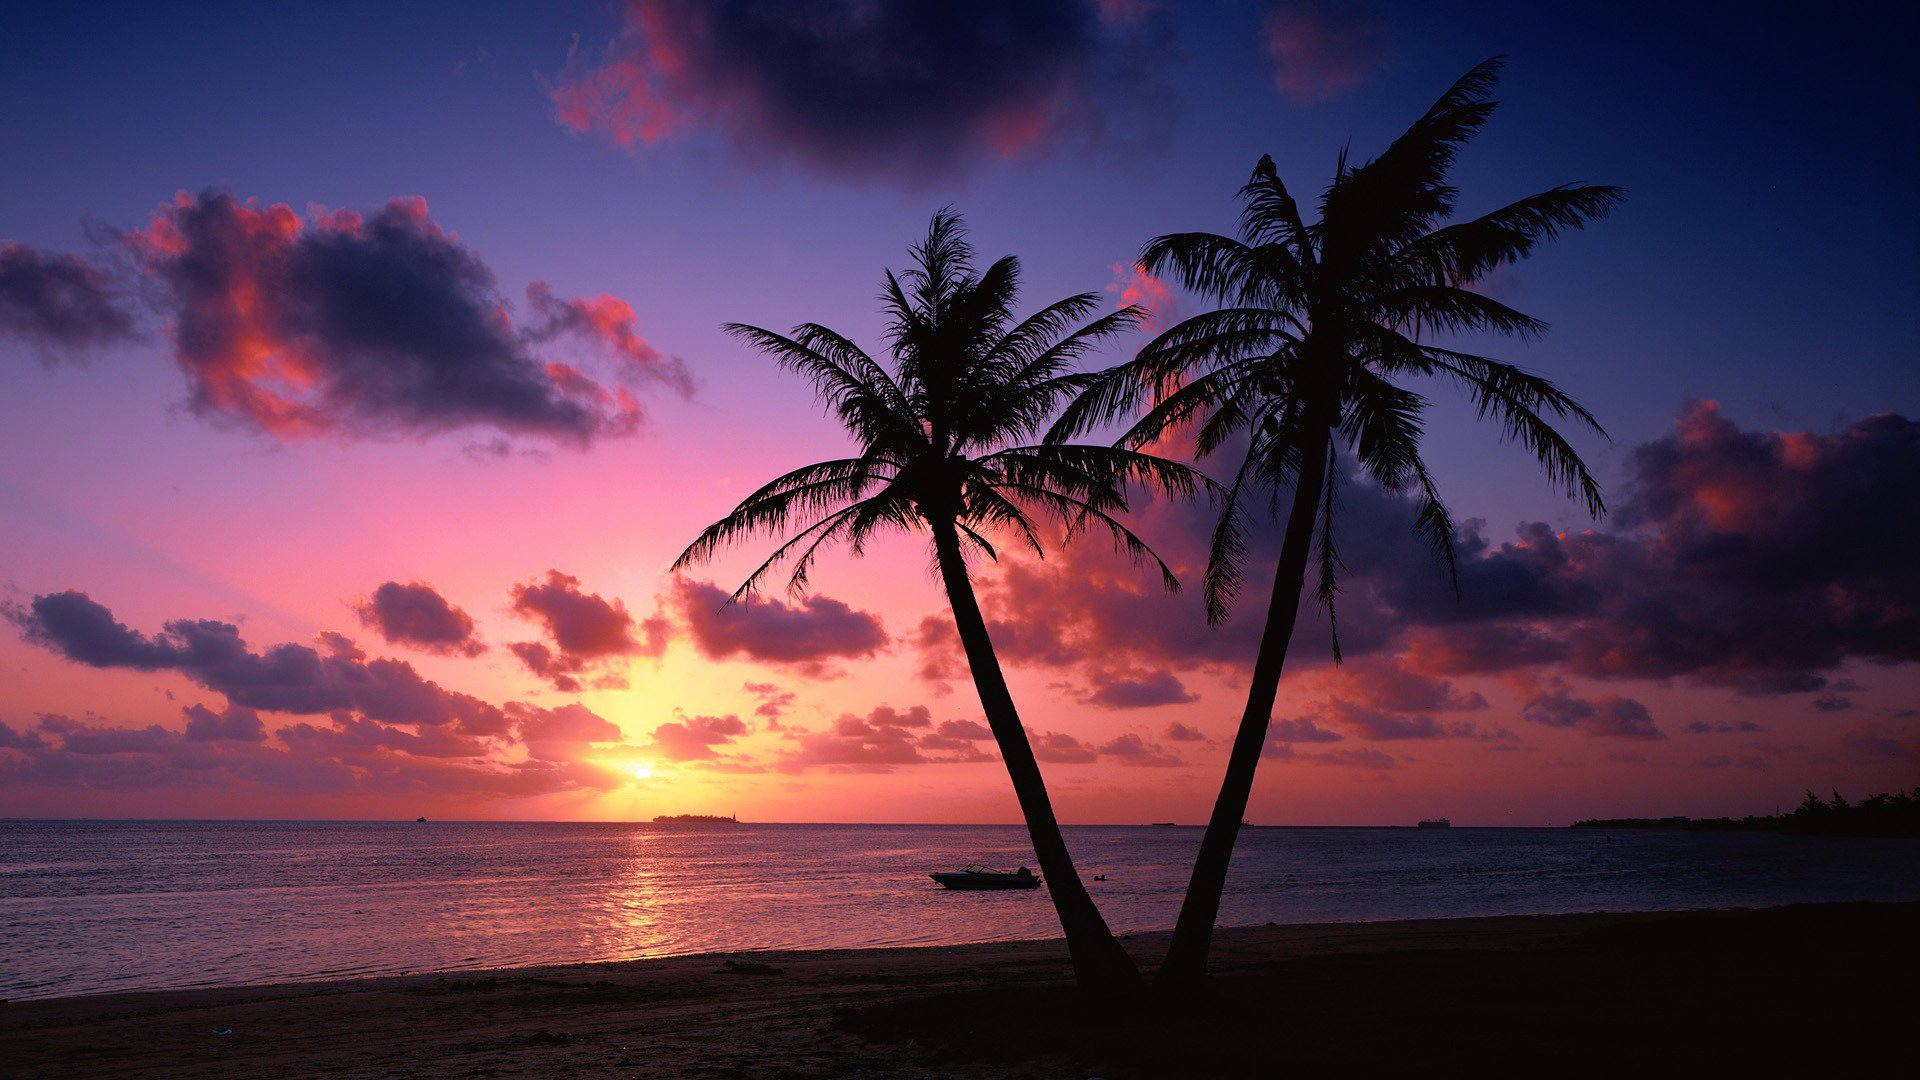 Sunset on a tropical beach wallpaper 6856 1920x1080